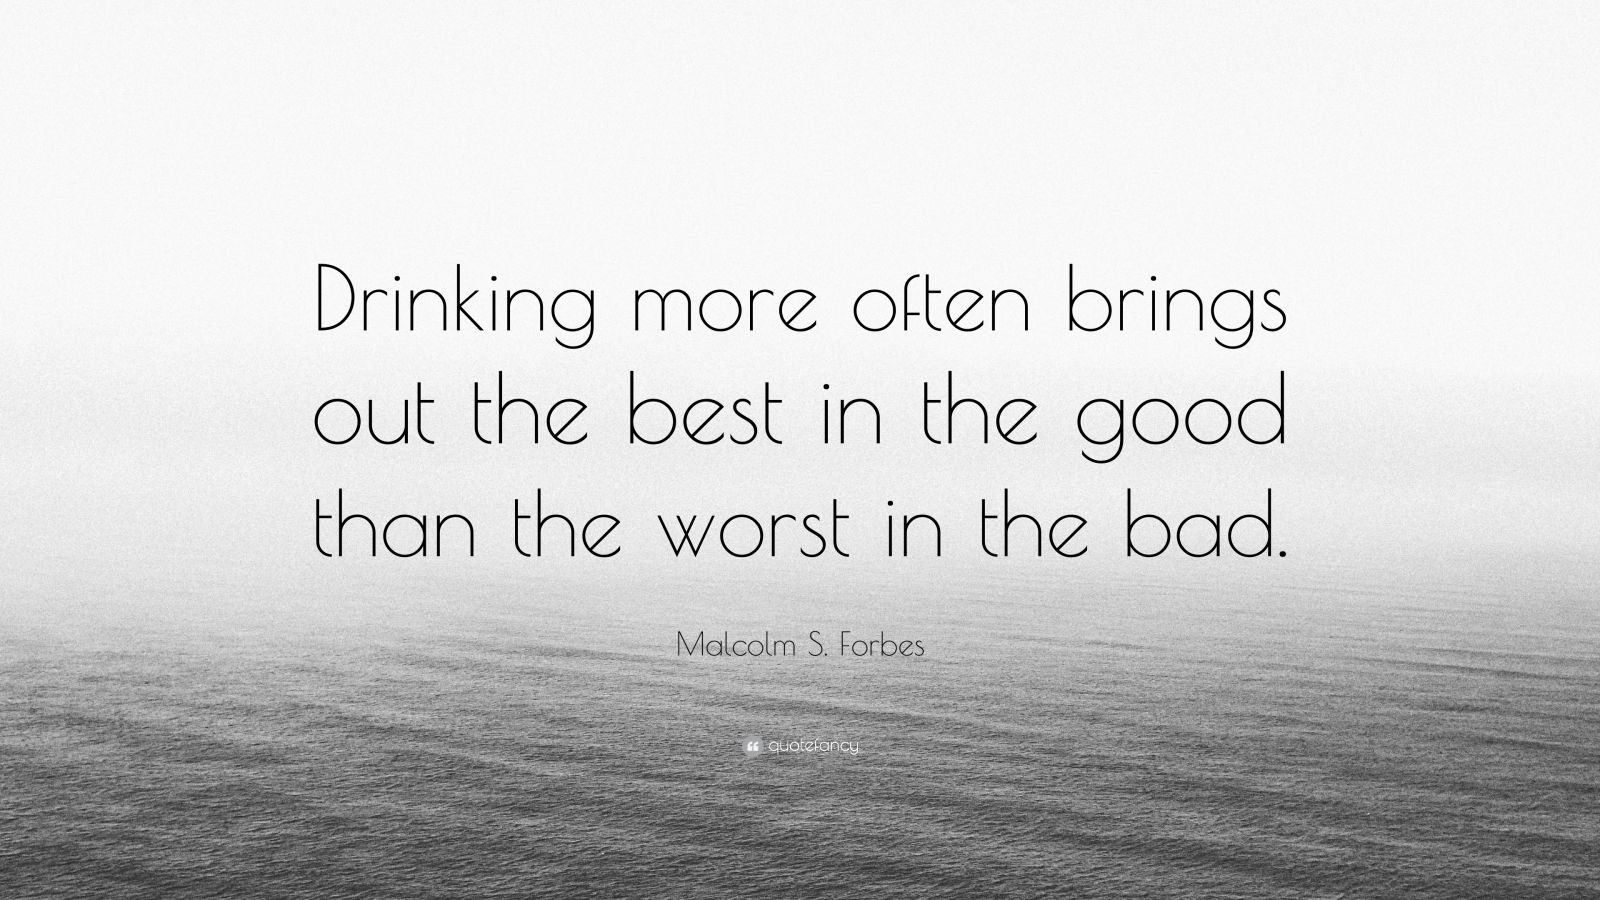 """Malcolm S. Forbes Quote: """"Drinking more often brings out the best in the good than the worst in the bad."""""""